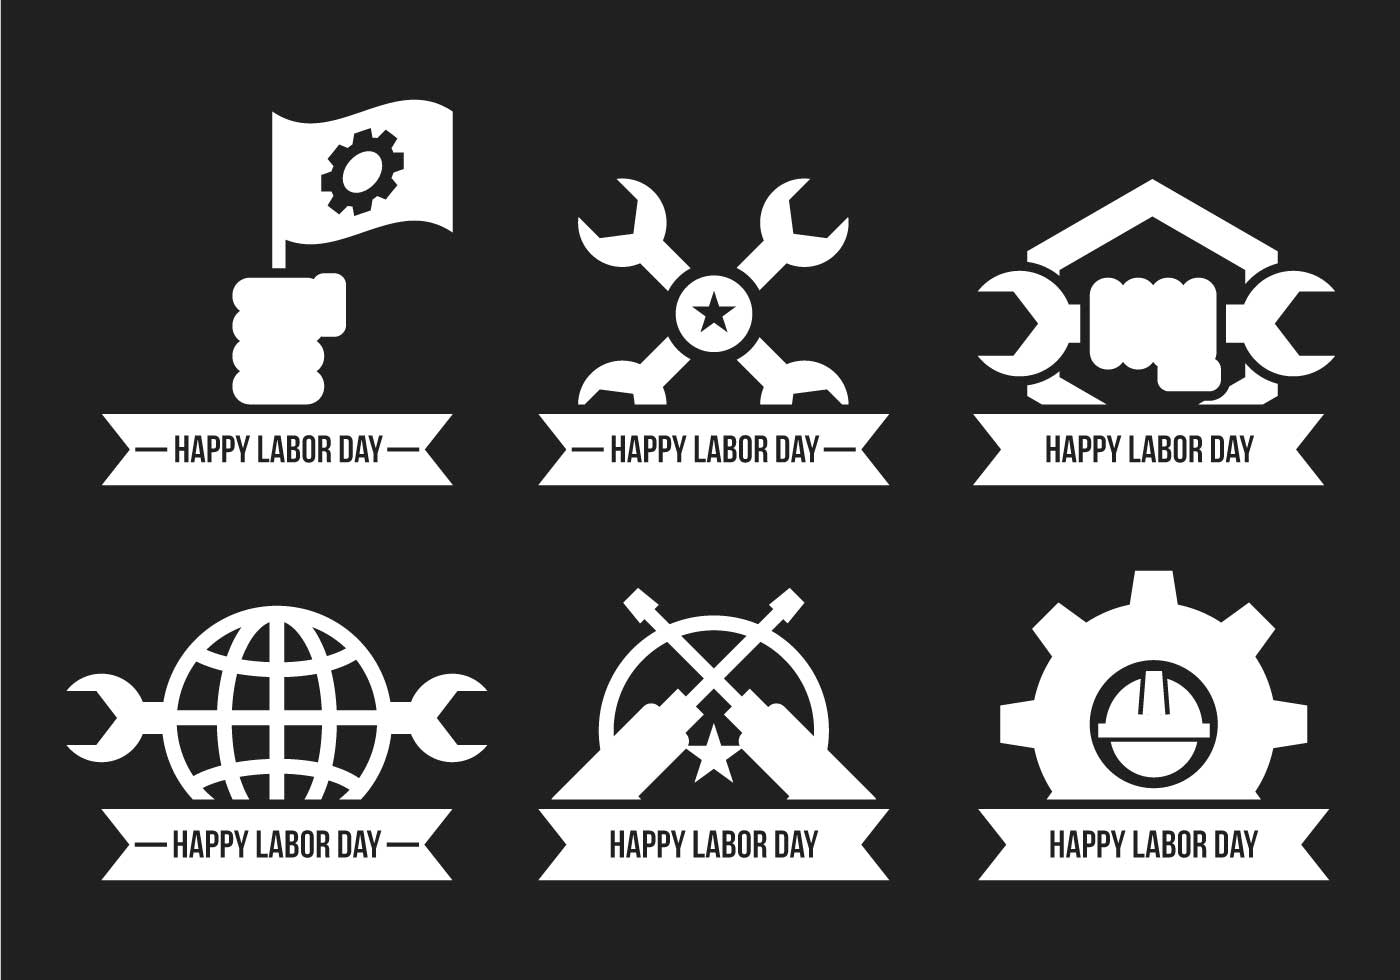 labor day vector icons download free vector art stock